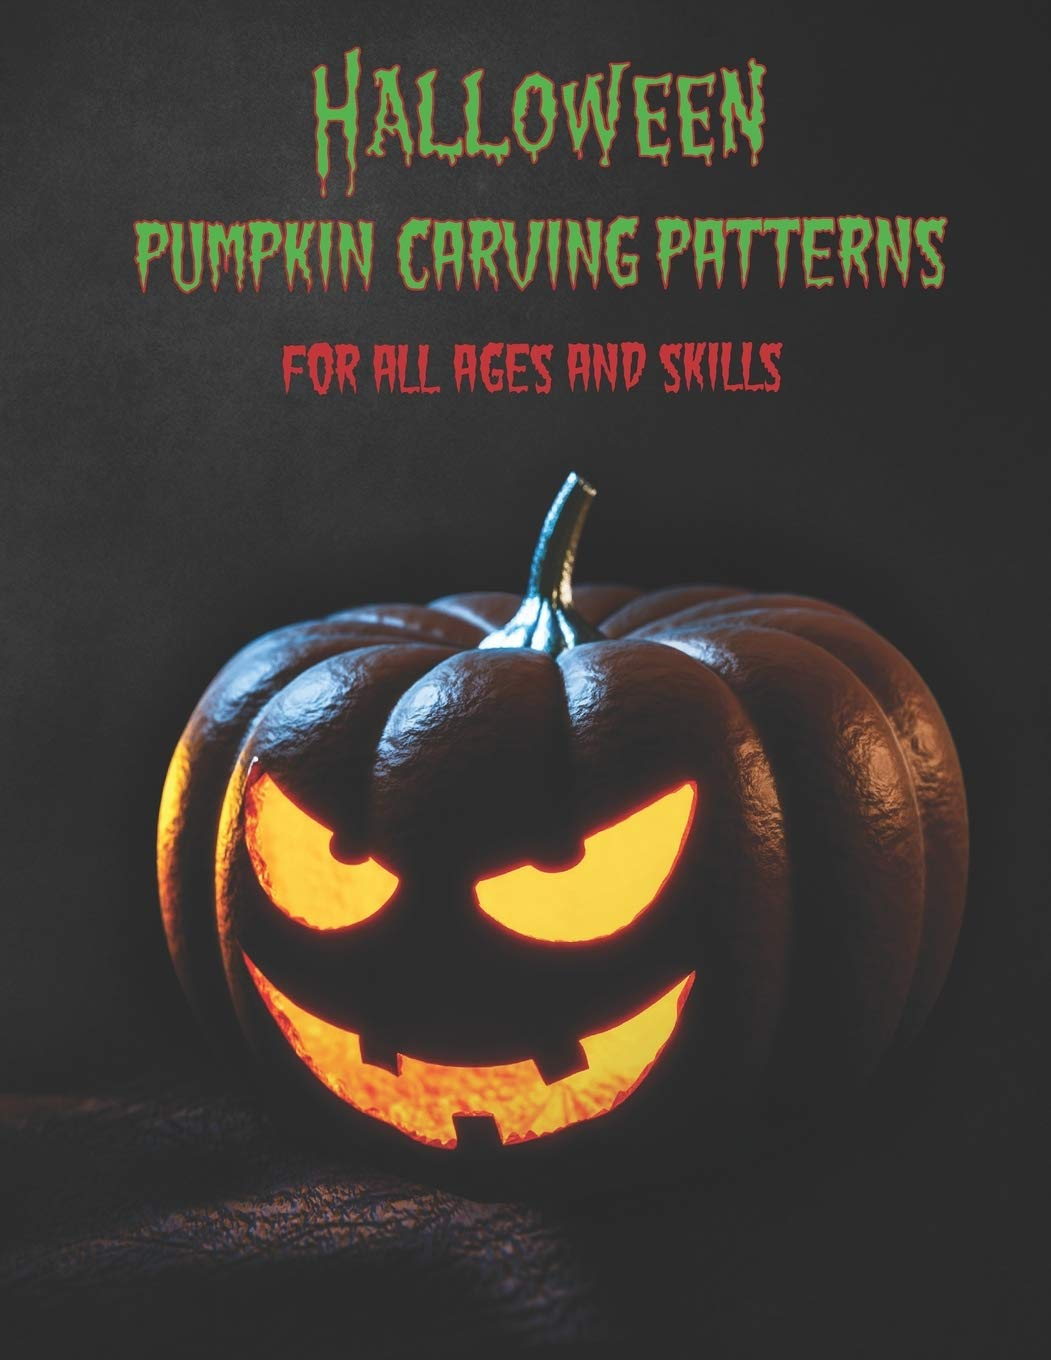 Halloween Pumpkin Carving Shapes.Buy Halloween Pumpkin Carving Patterns For All Ages And Skills 50 Fun Stencils Fit For Kids And Adults From Easy To Difficult 1 Halloween Crafts Book Online At Low Prices In India